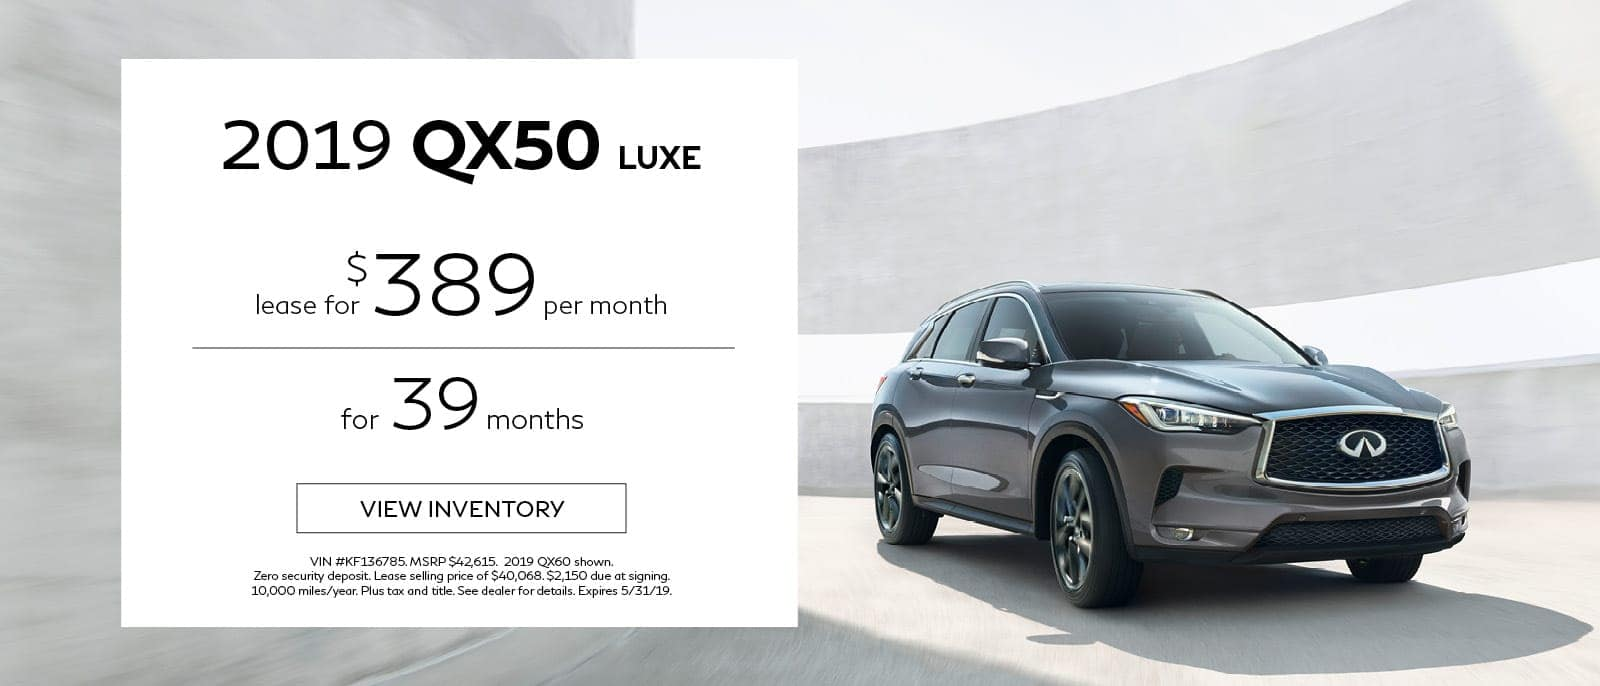 2019_QX50_lease_389_May